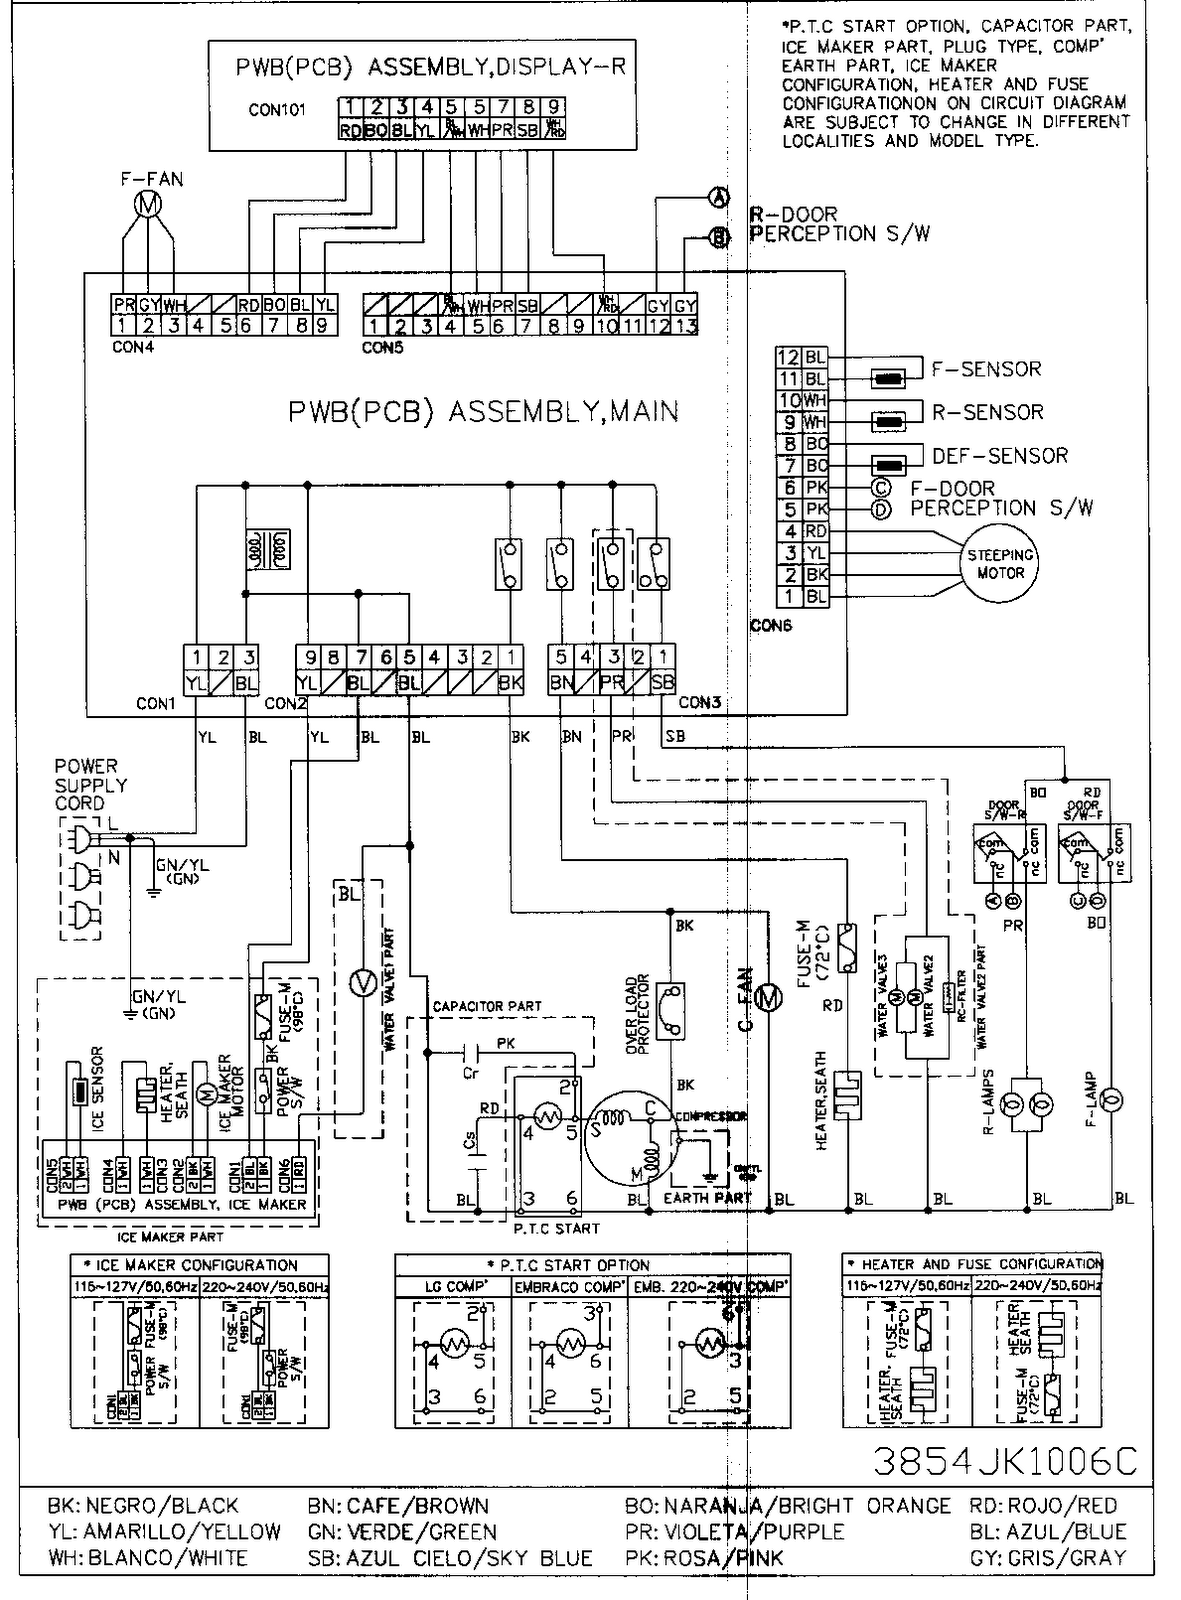 norcold refrigerator wiring diagram for relay spotlights technology of 2 day: 2012-02-05